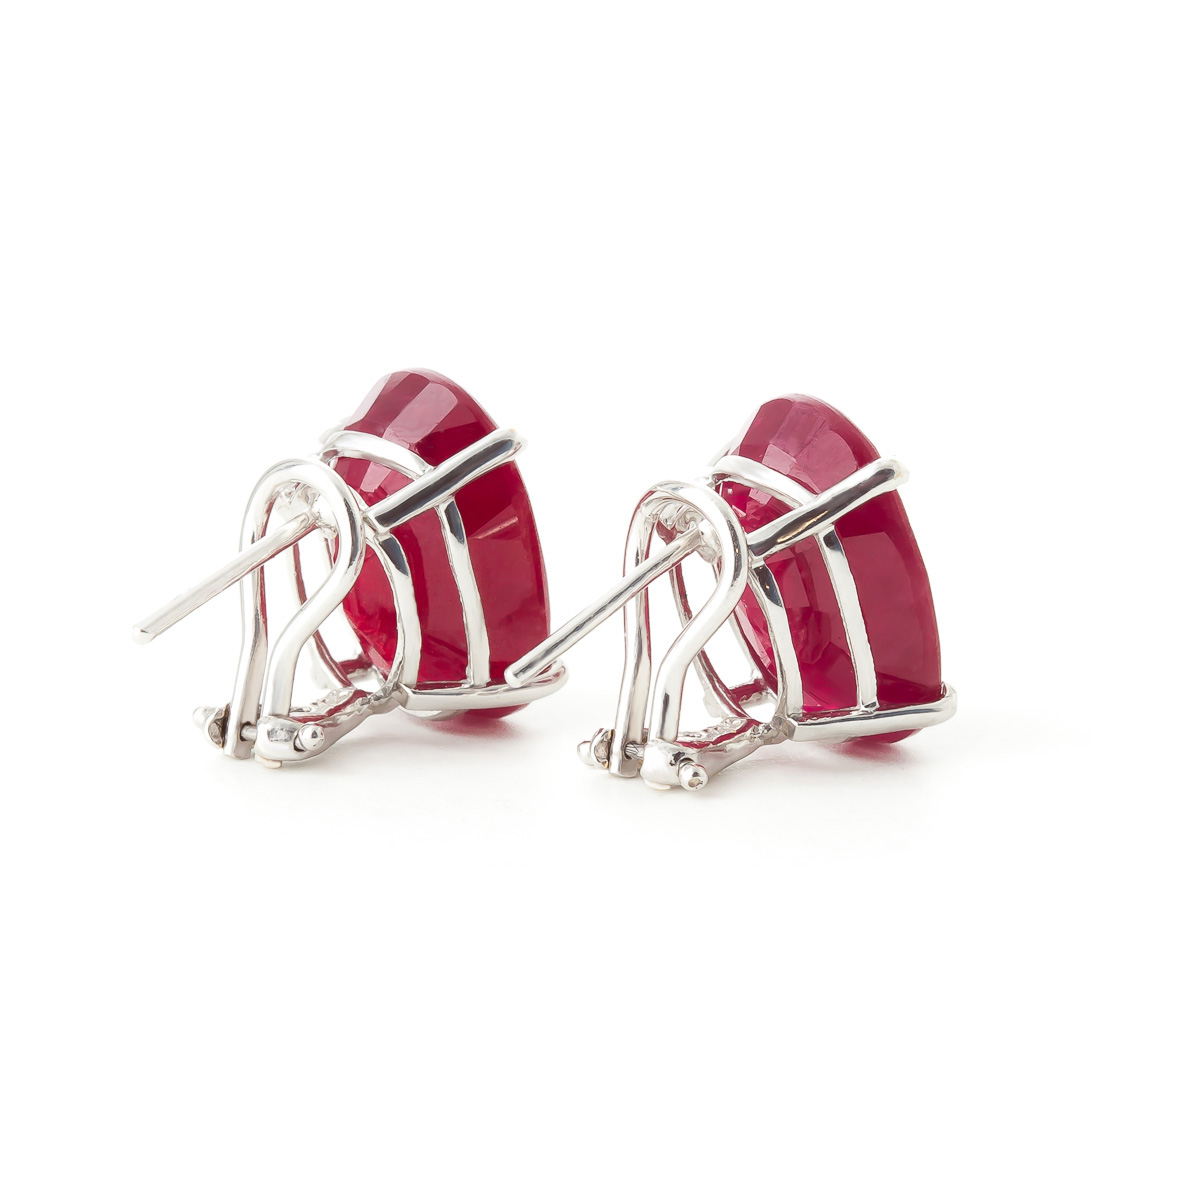 Ruby Stud Earrings 15.0ctw in 9ct White Gold